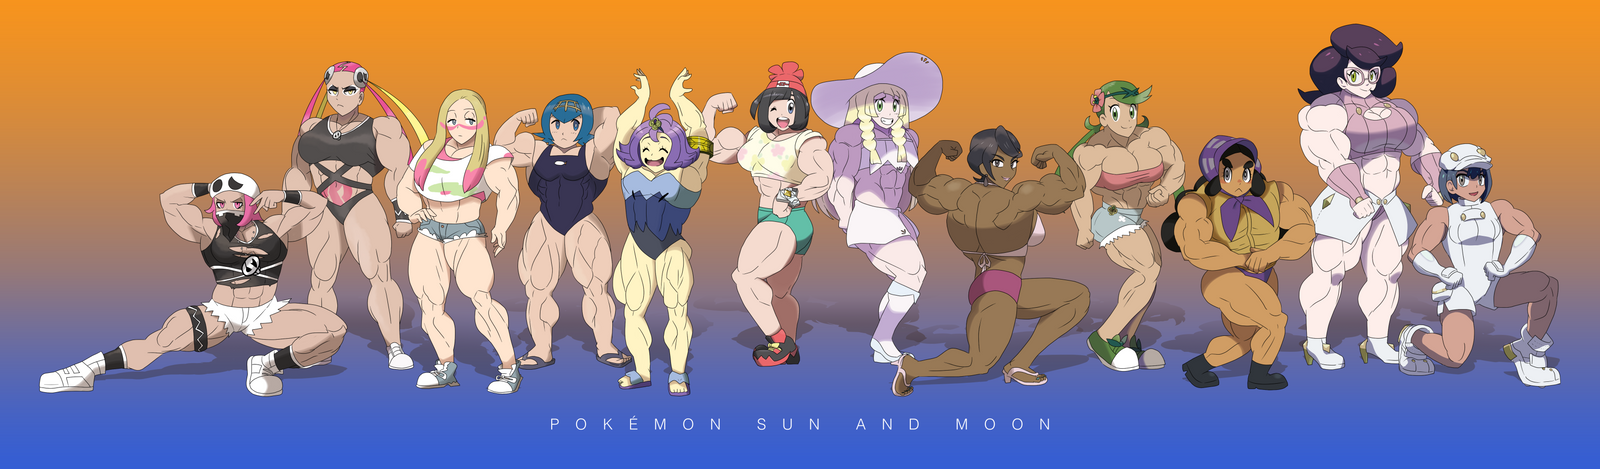 Pokemon 20th Anniversary FBBs - Sun and Moon by DepravedDefense